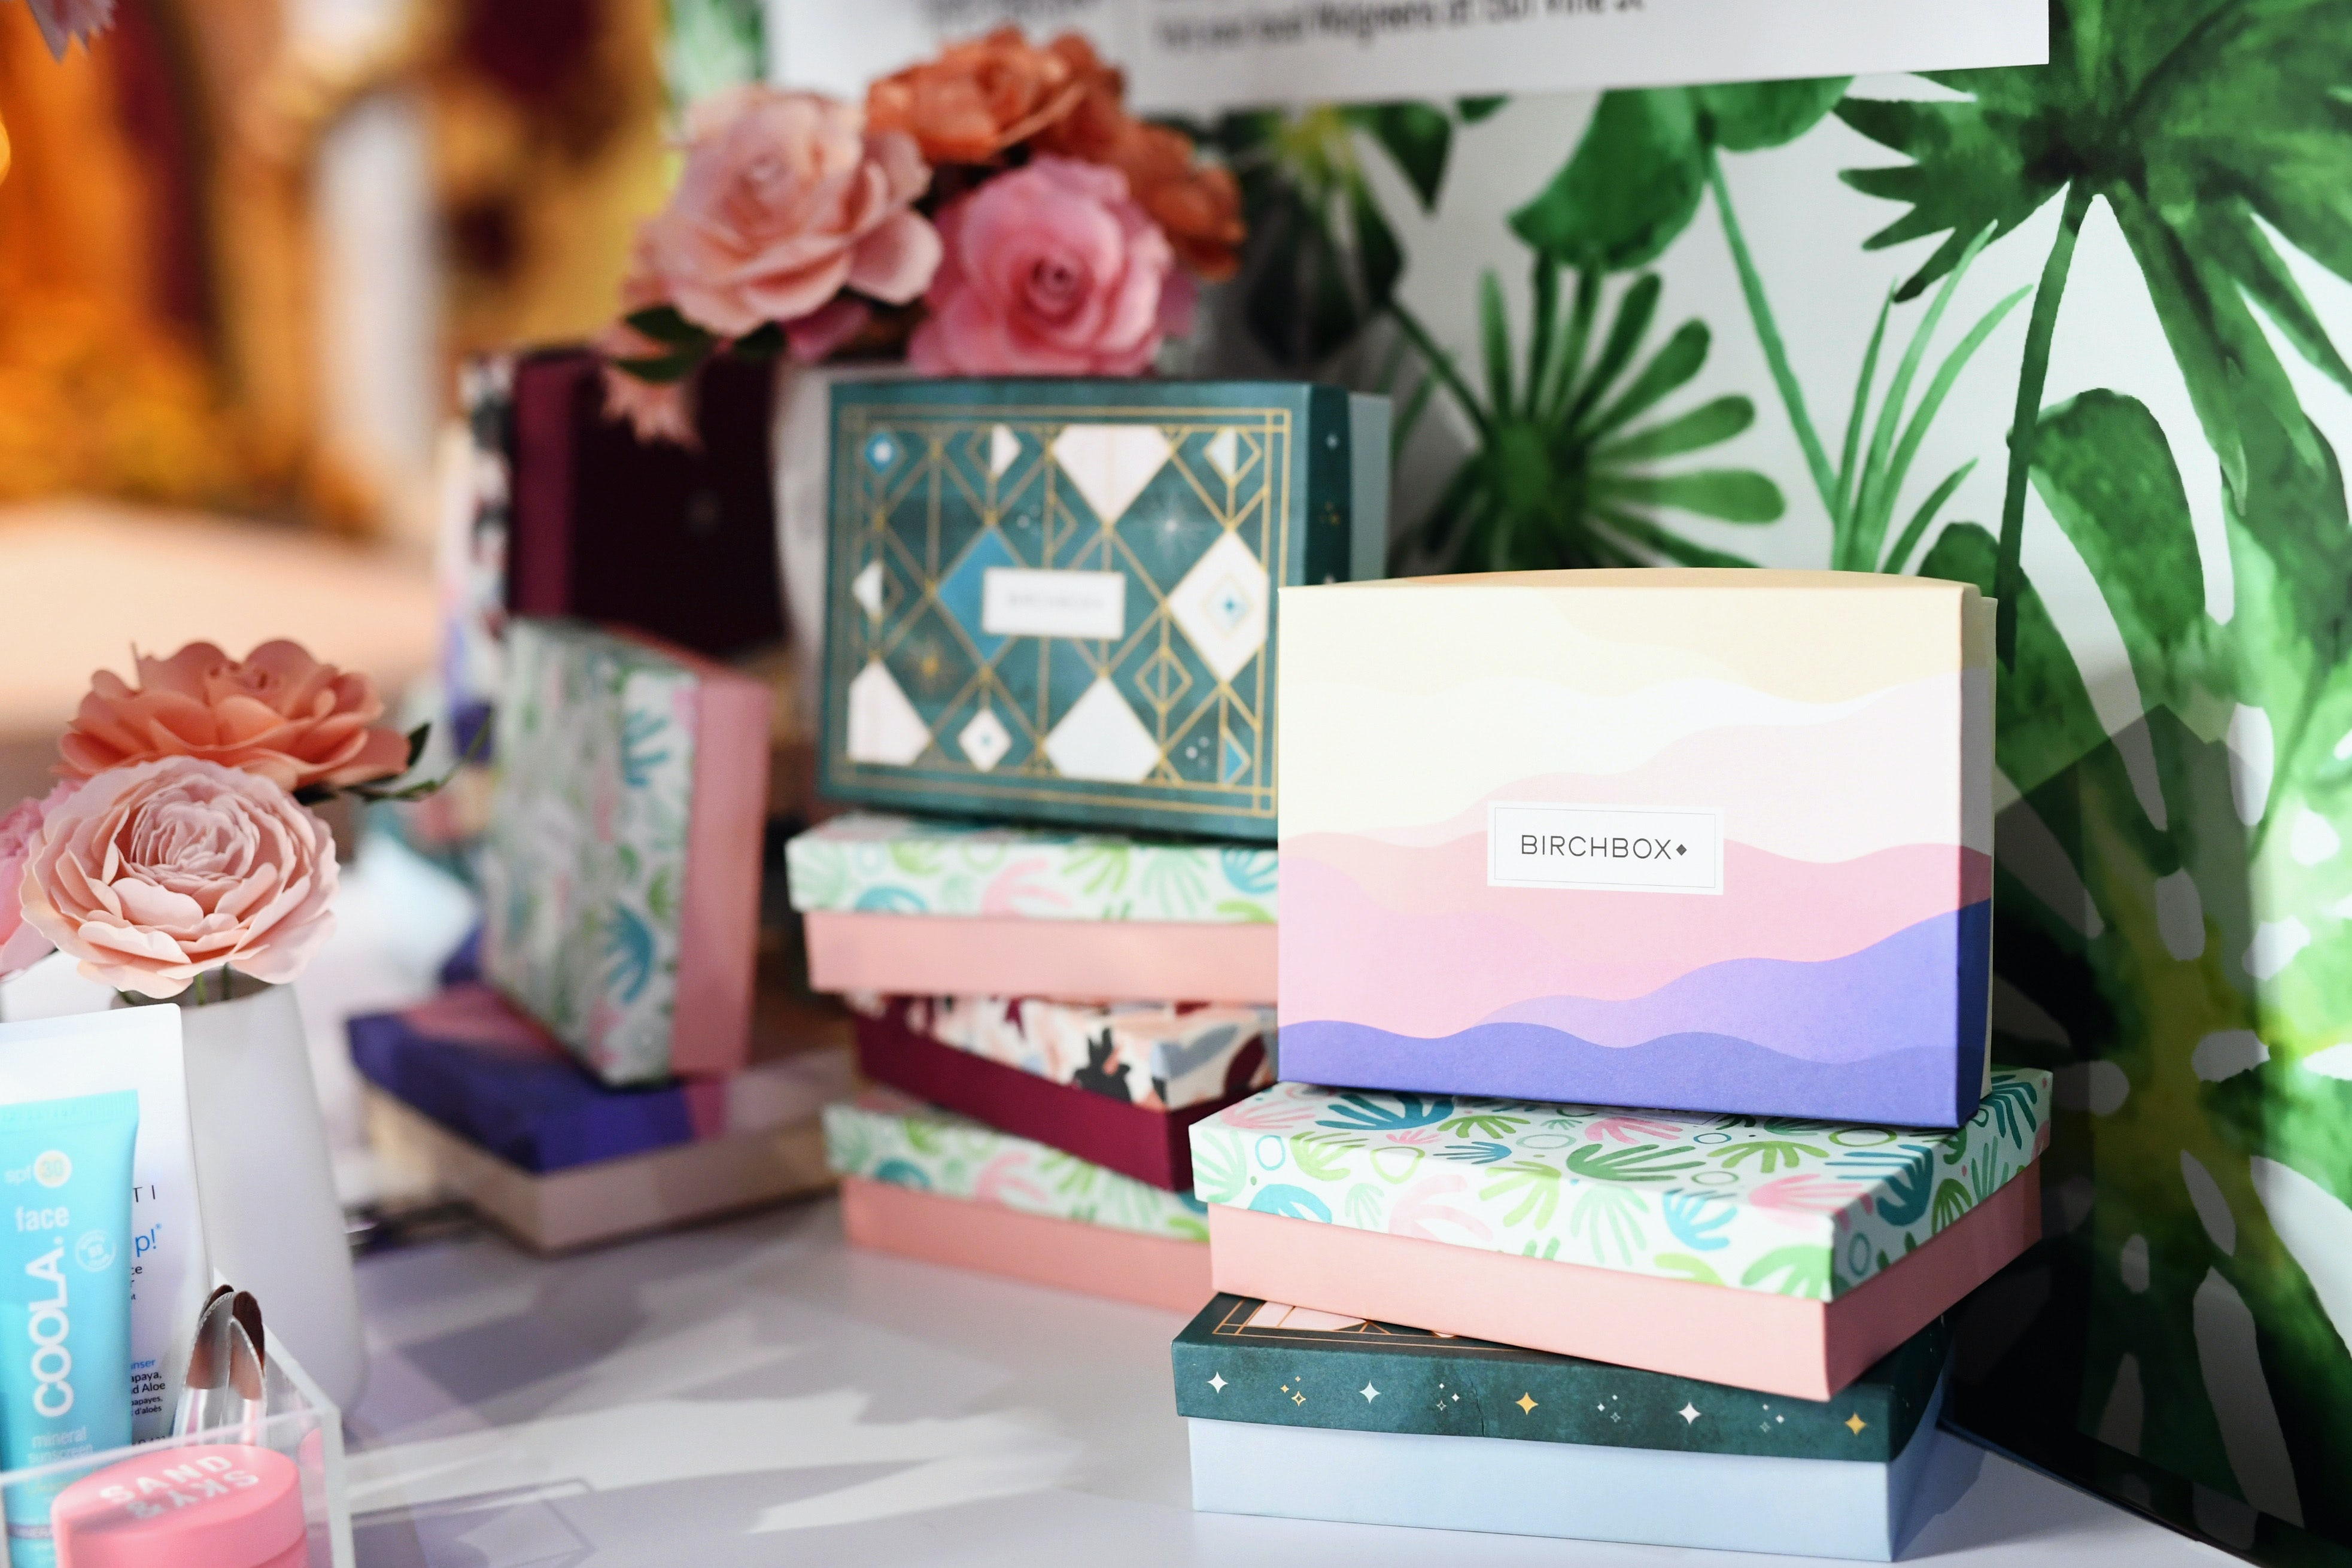 Birchbox x Refinery29 subscription box collaboration. Getty Images.